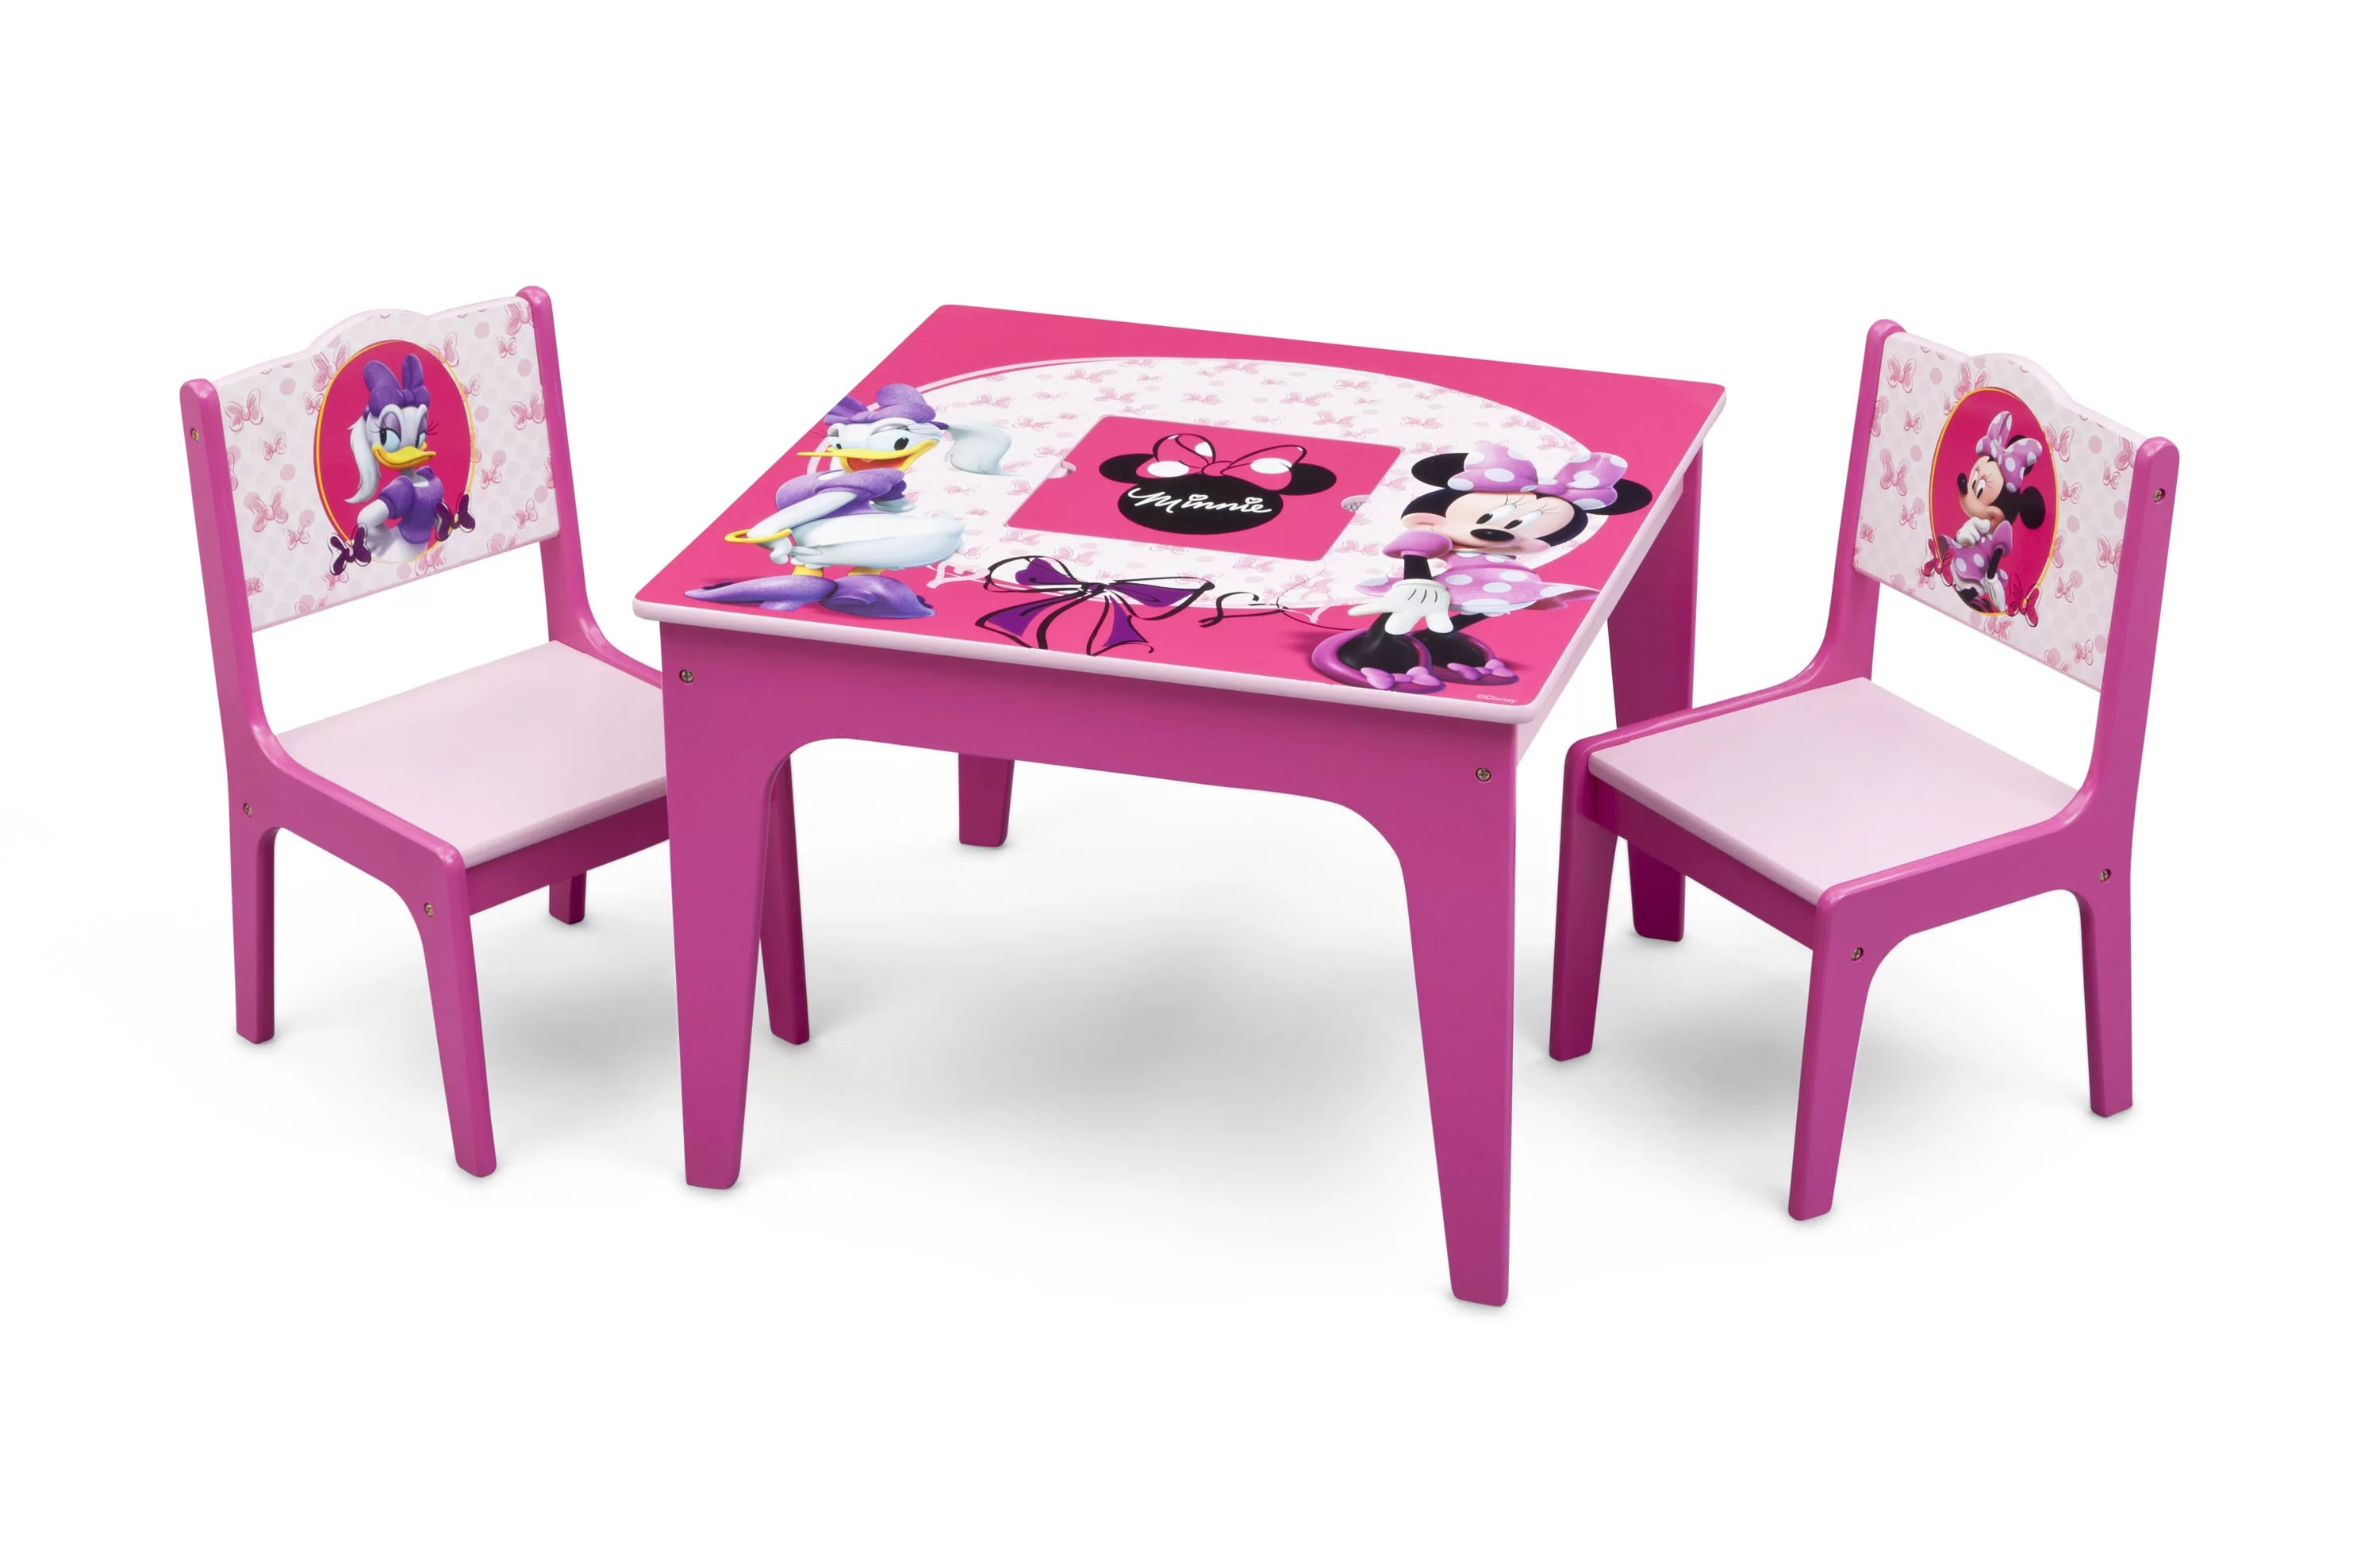 Table Chaise Minnie Delta Children Minnie Mouse Kids 3 Piece Table And Chair